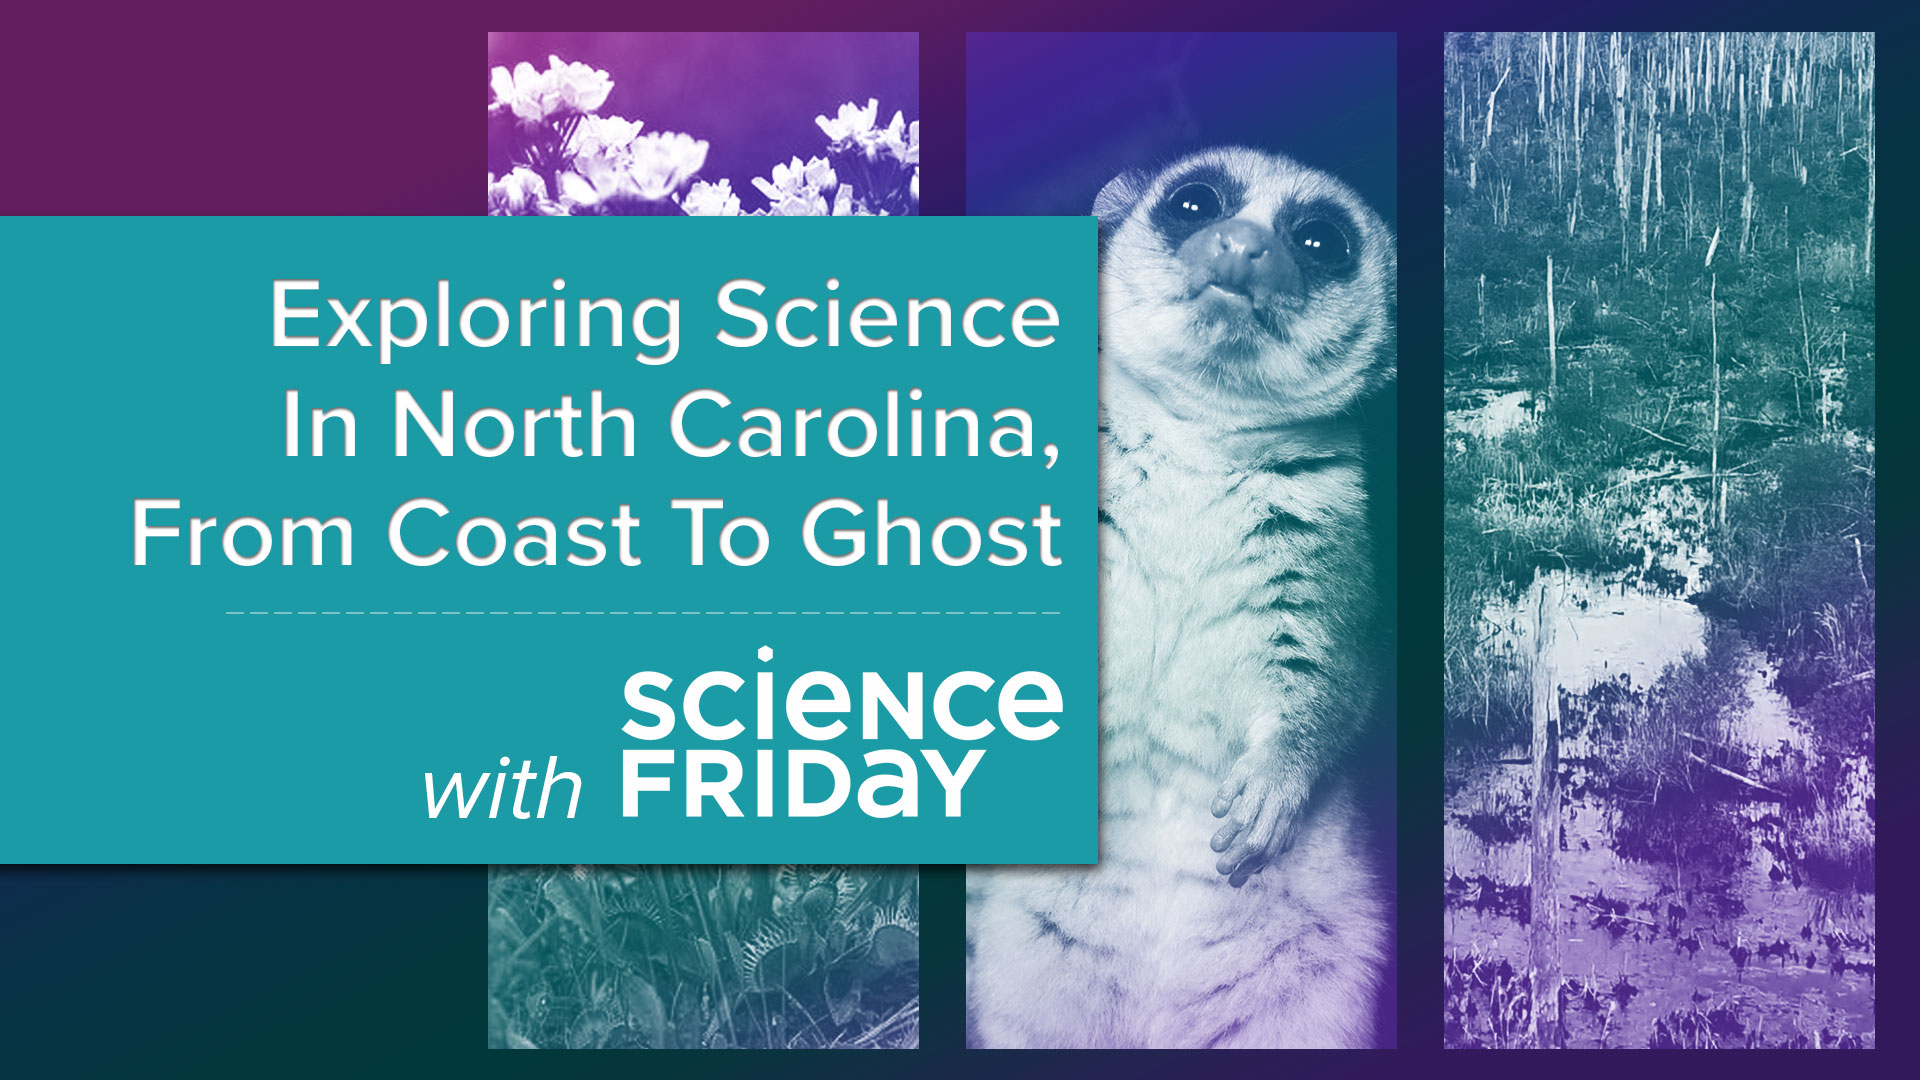 three images of flowers, a lemur, and a swamp with text 'Exploring Science in North Carolina, from coast to ghost'